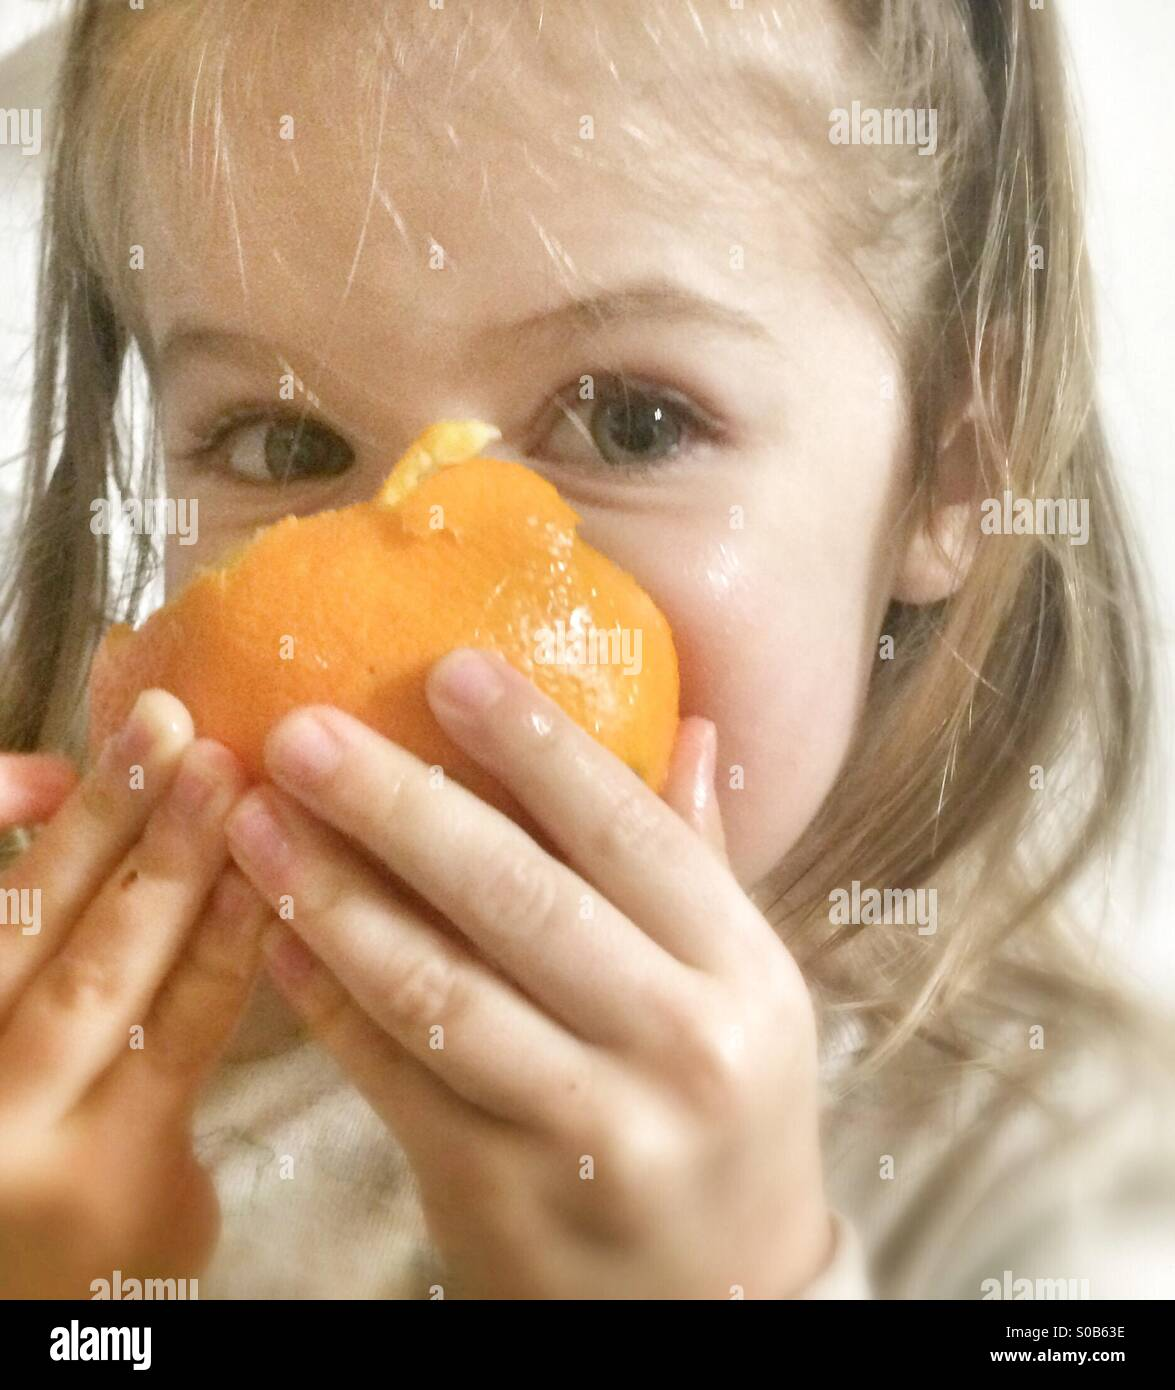 Toddler Eats Orange - Stock Image